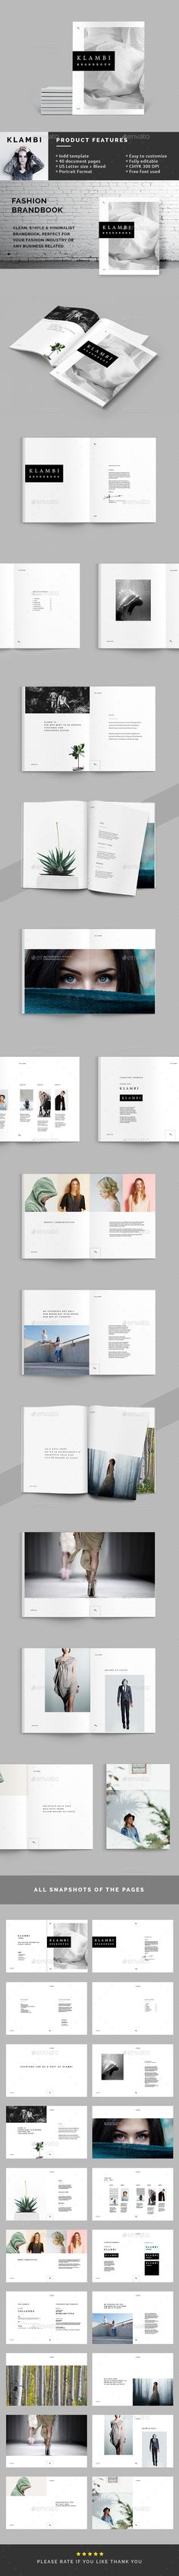 Photography Portfolio Brochure Template InDesign INDD Pages - Basic brochure template